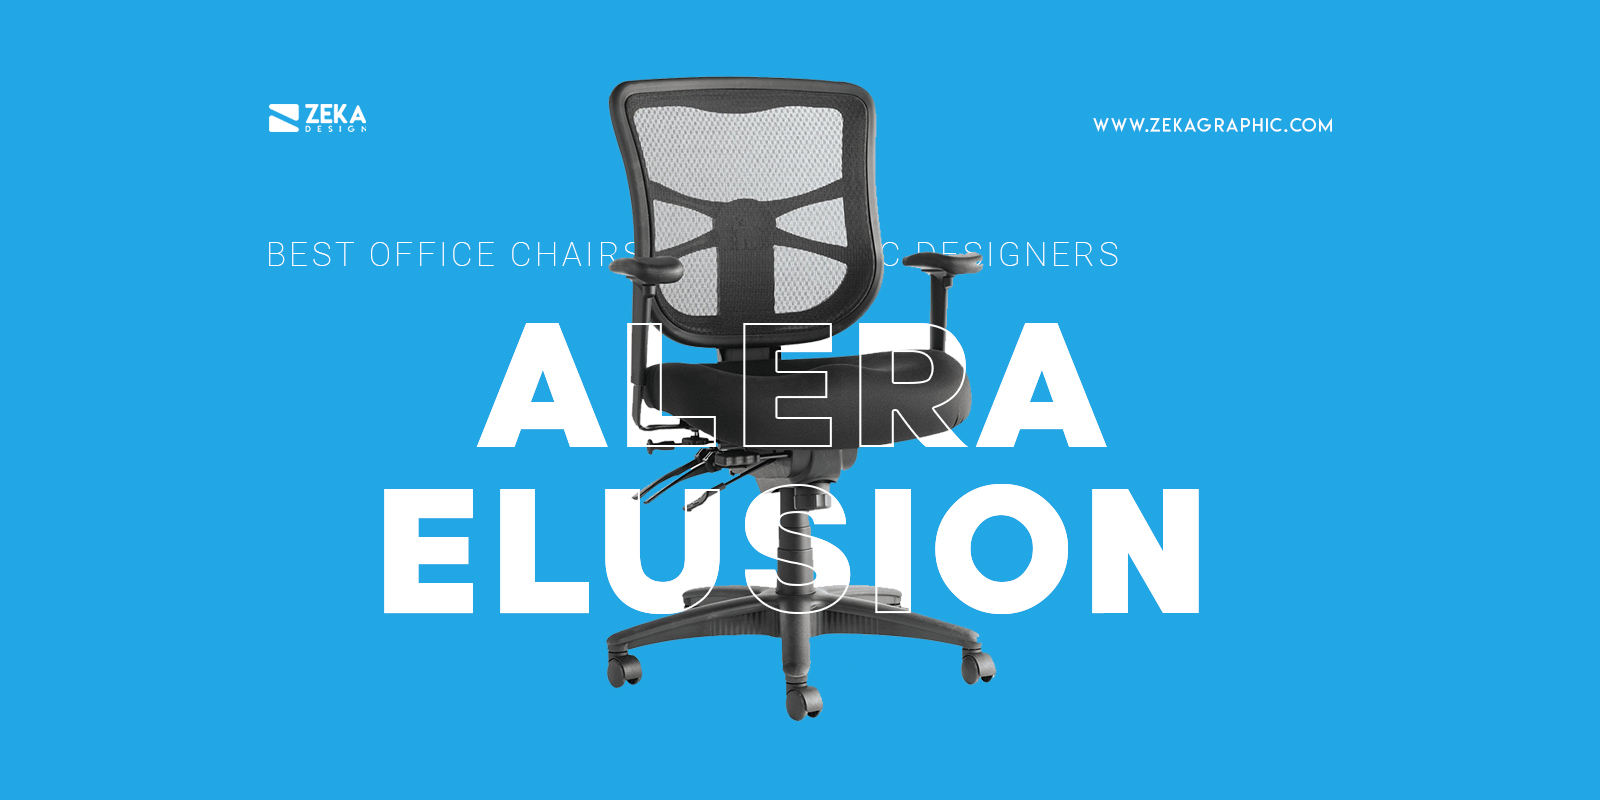 Alera Elusion Best Affordable Office Chair For Graphic Designers